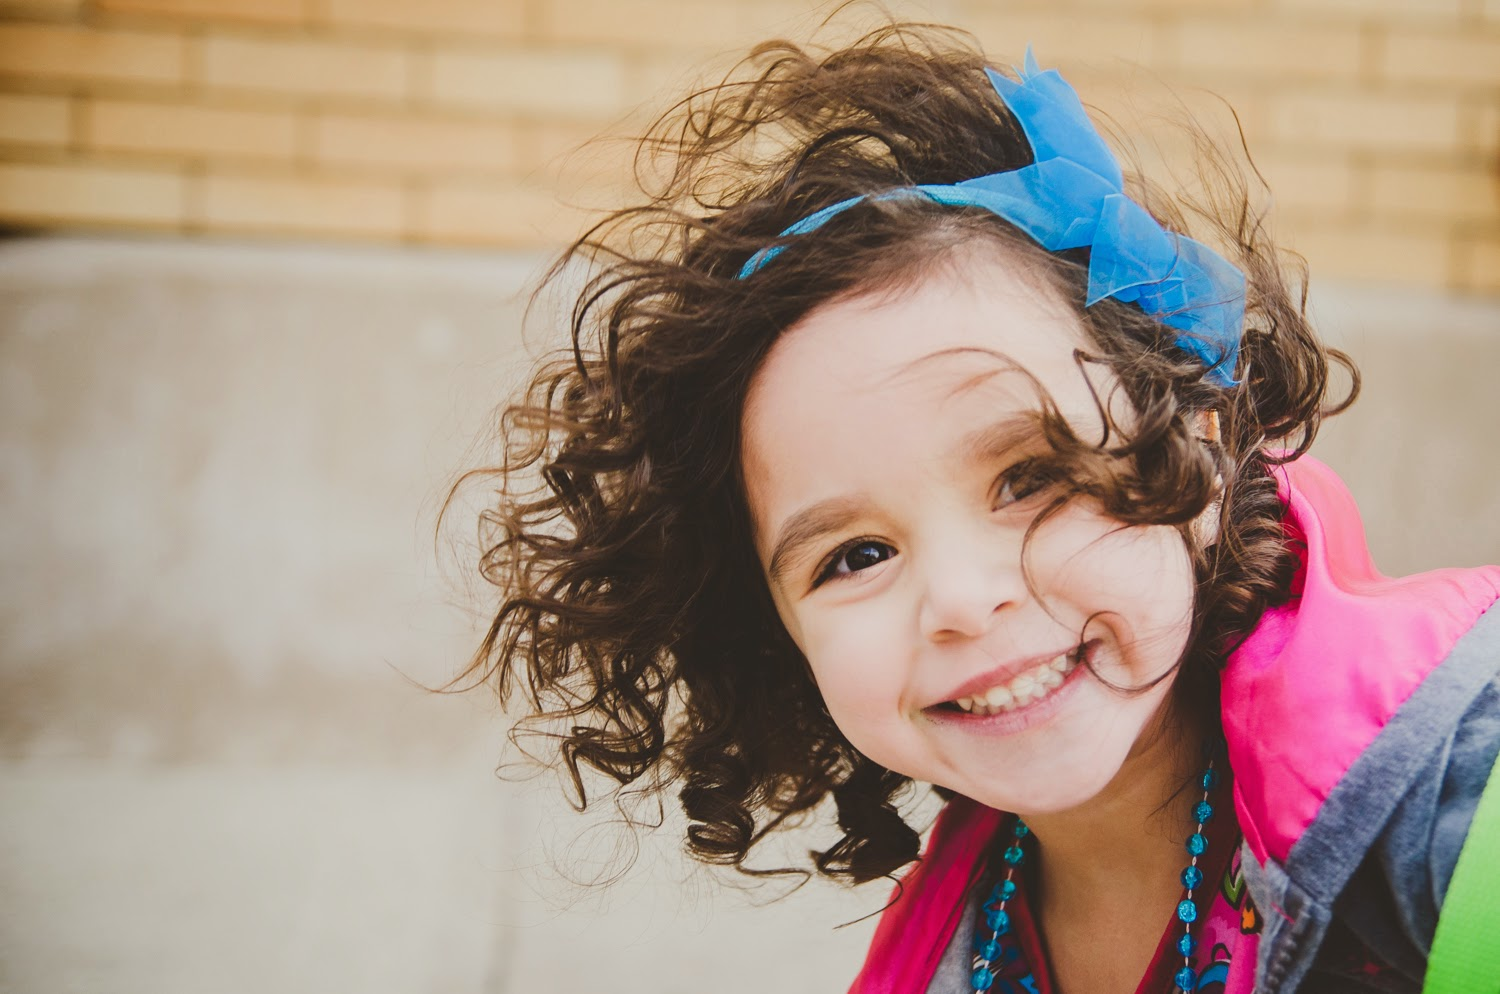 child smiles and looks cute in portraits by child photographer in indianapolis